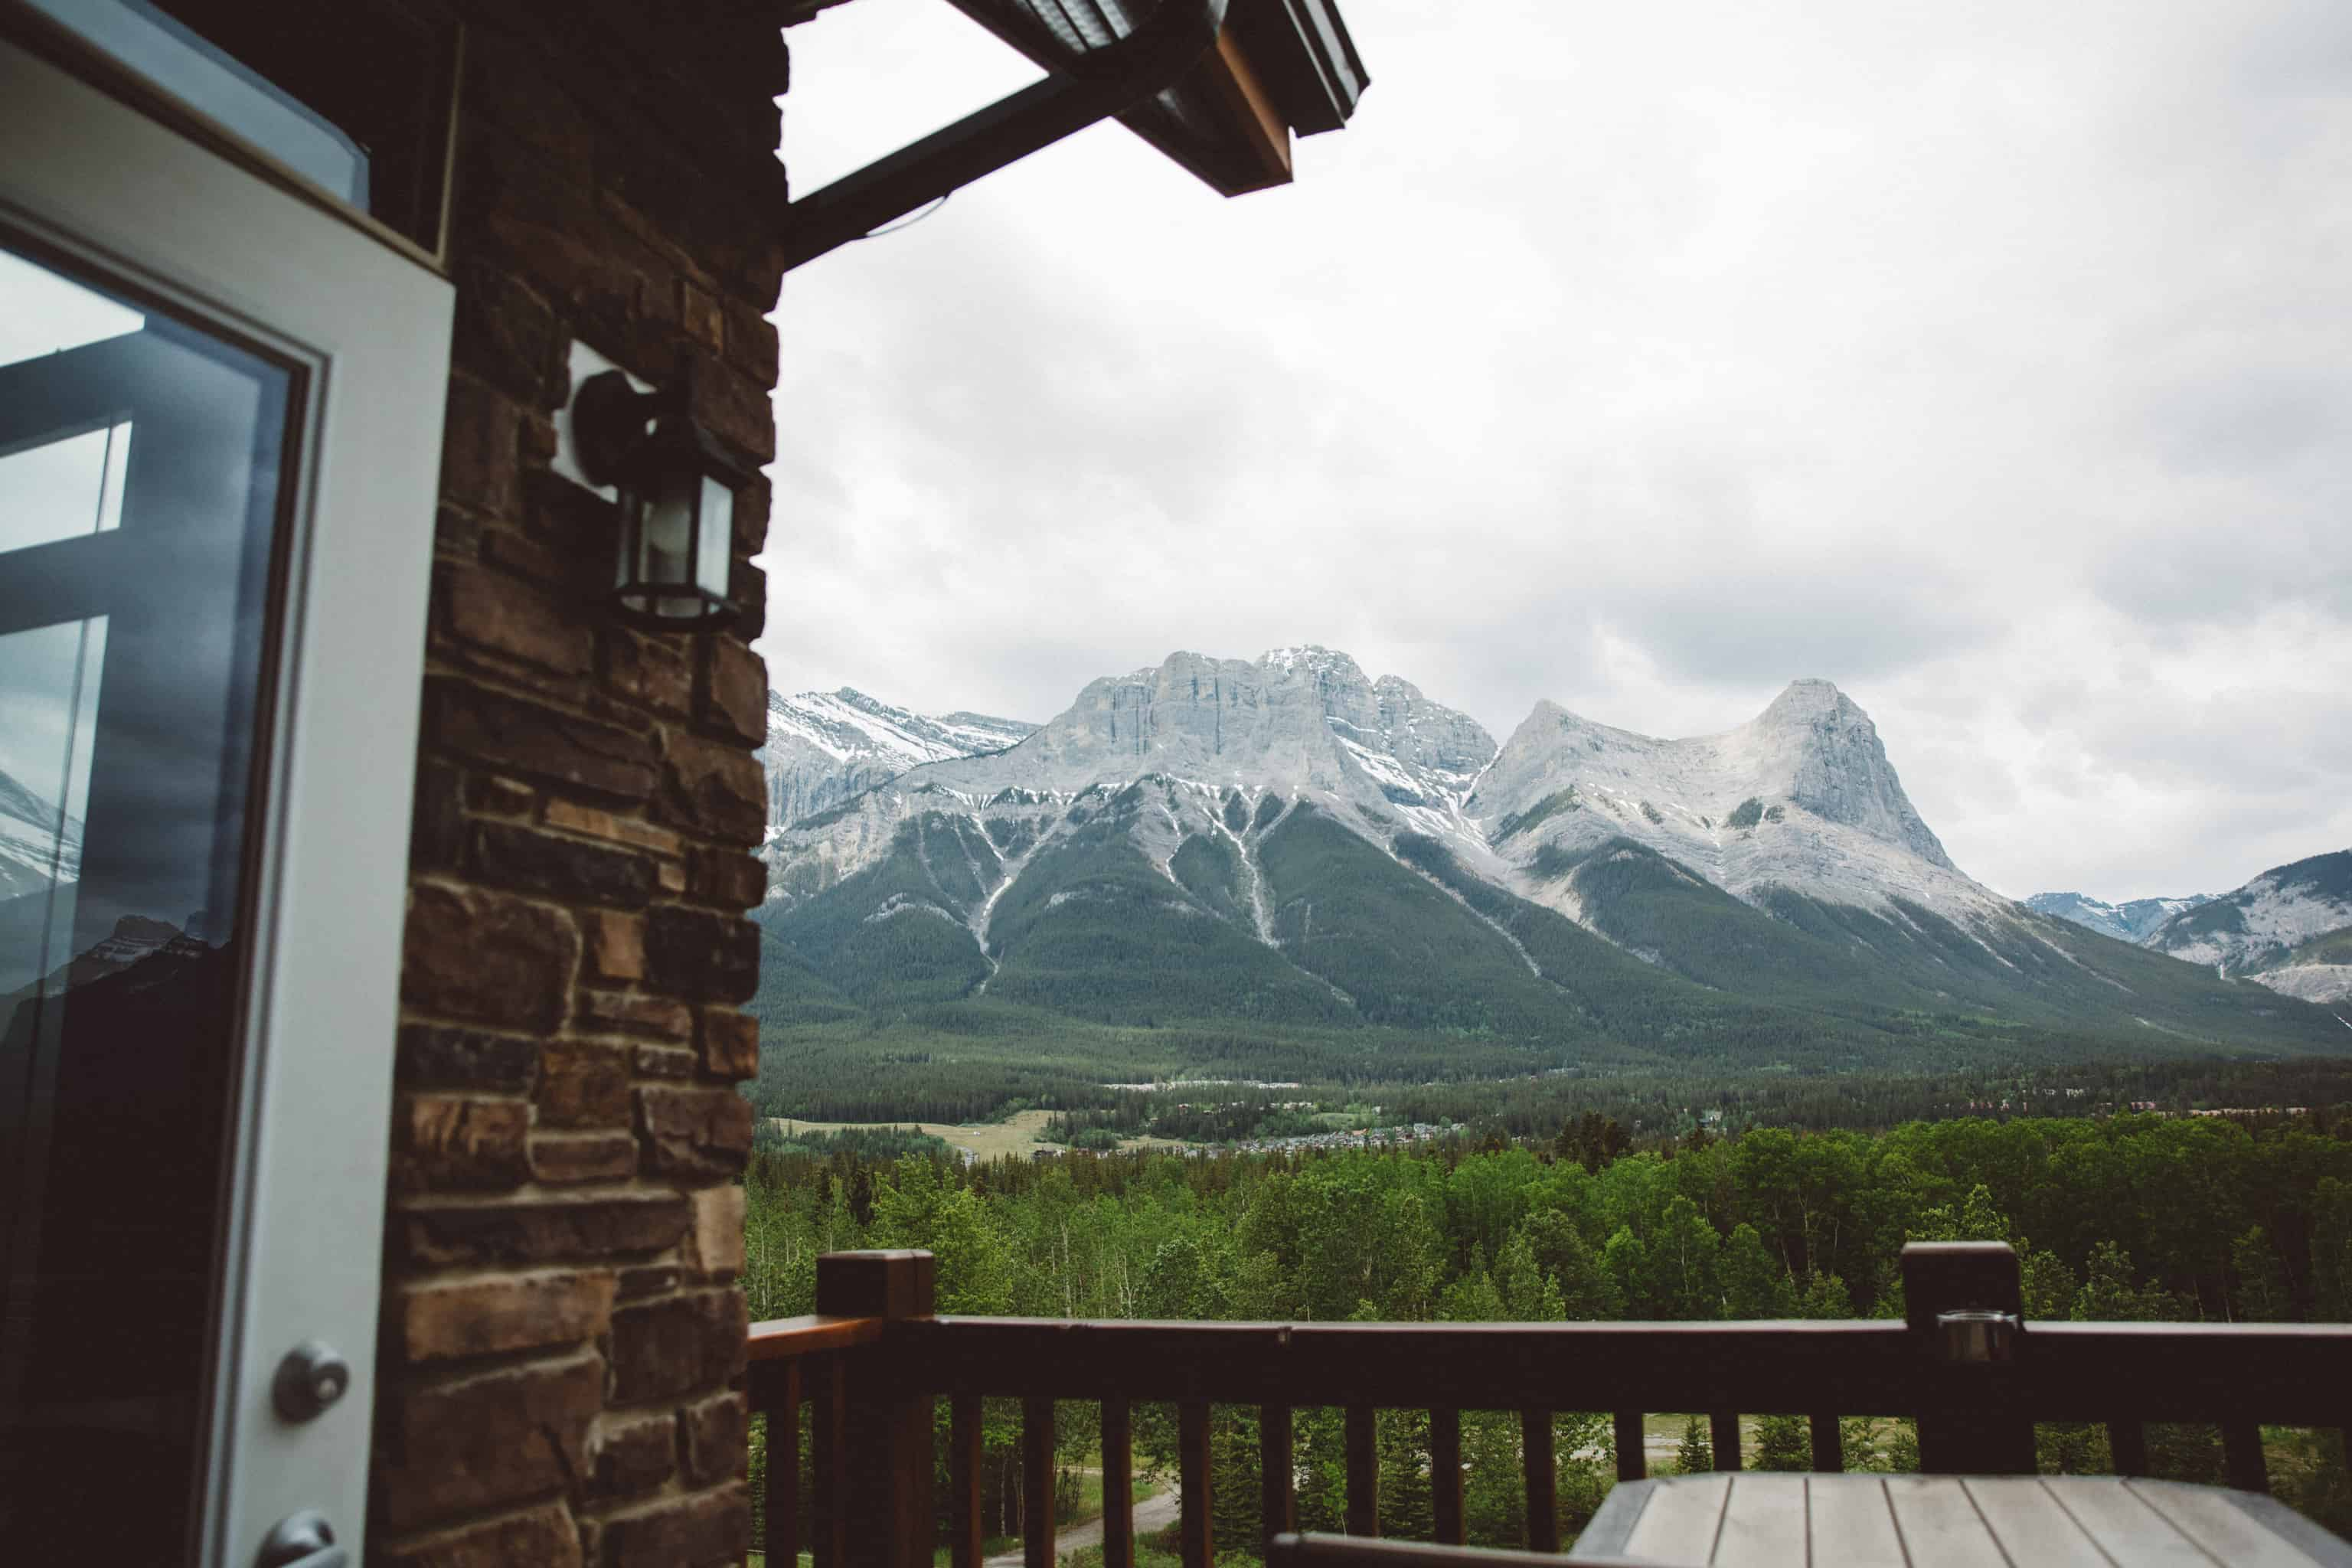 20 Adventurous Things To Do In Banff, Canada - Stoneridge Resort